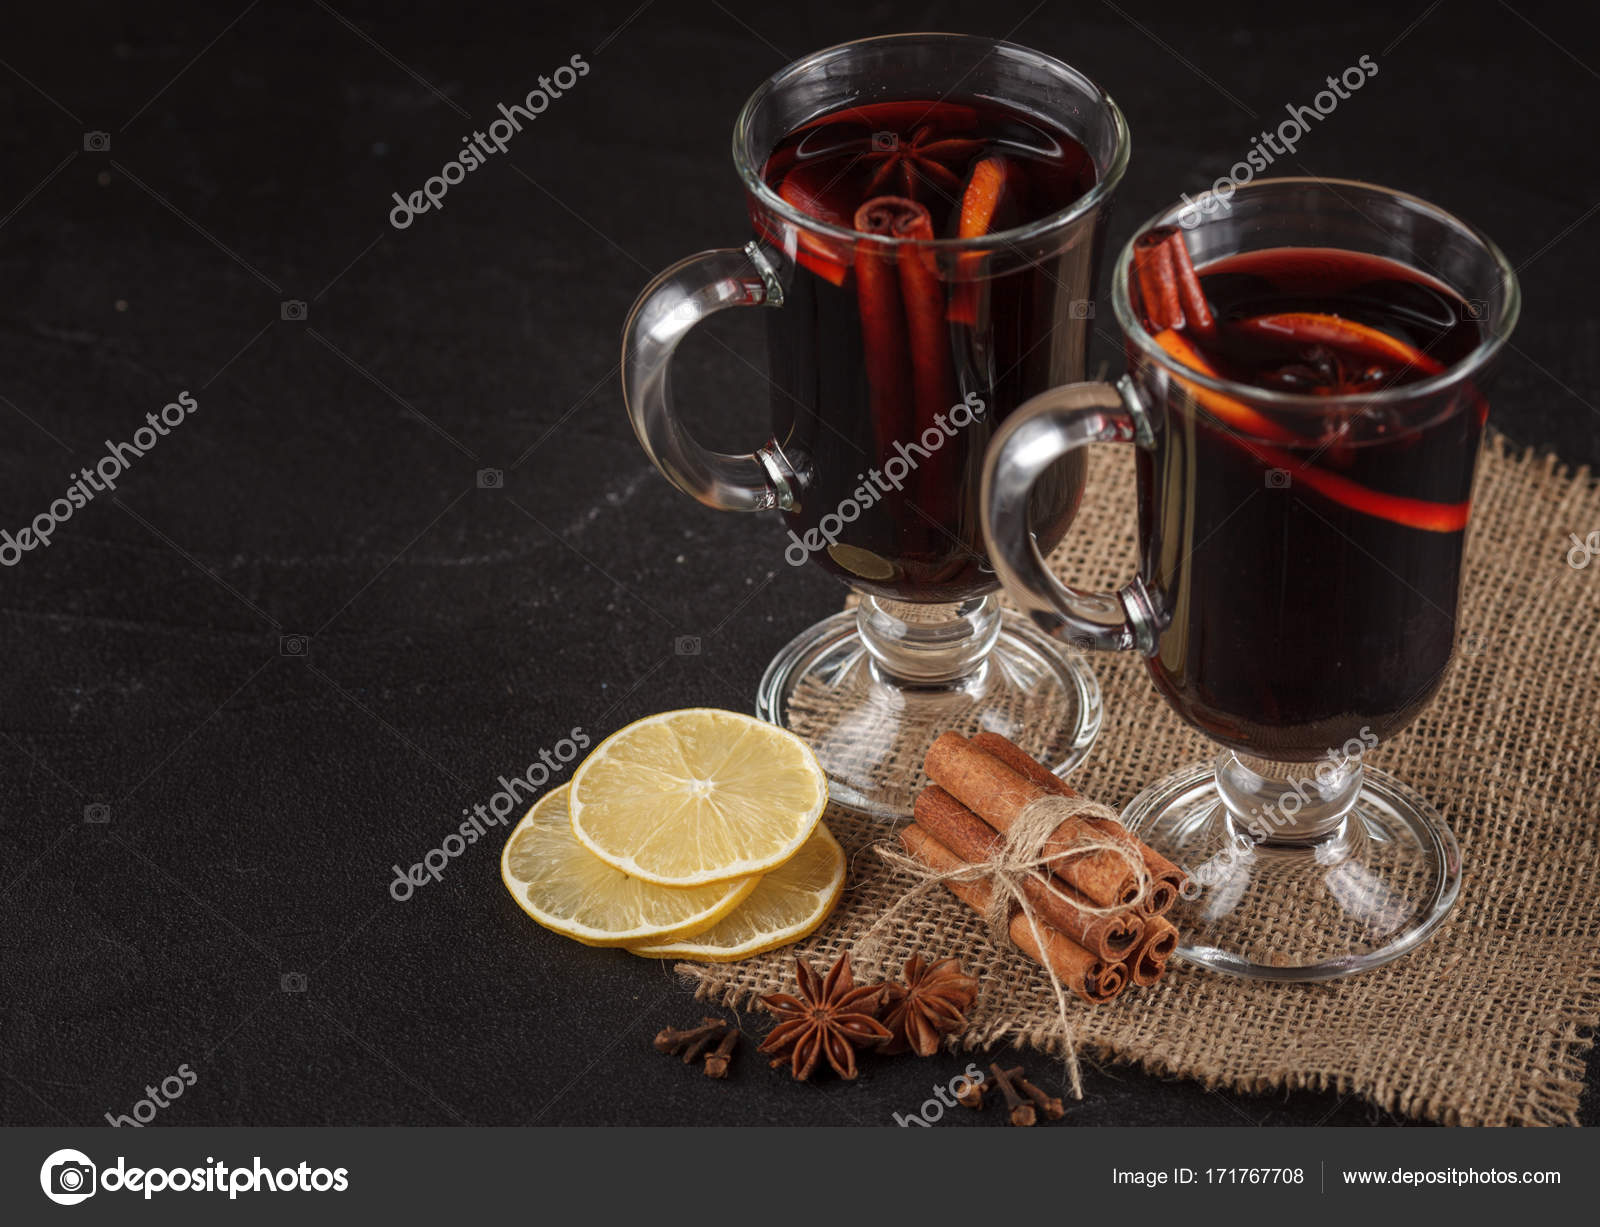 Mulled Wine Banner Glasses With Hot Red Wine And Spices On Dark Background Modern Dark Mood Style Stock Photo C Rojdesign 171767708